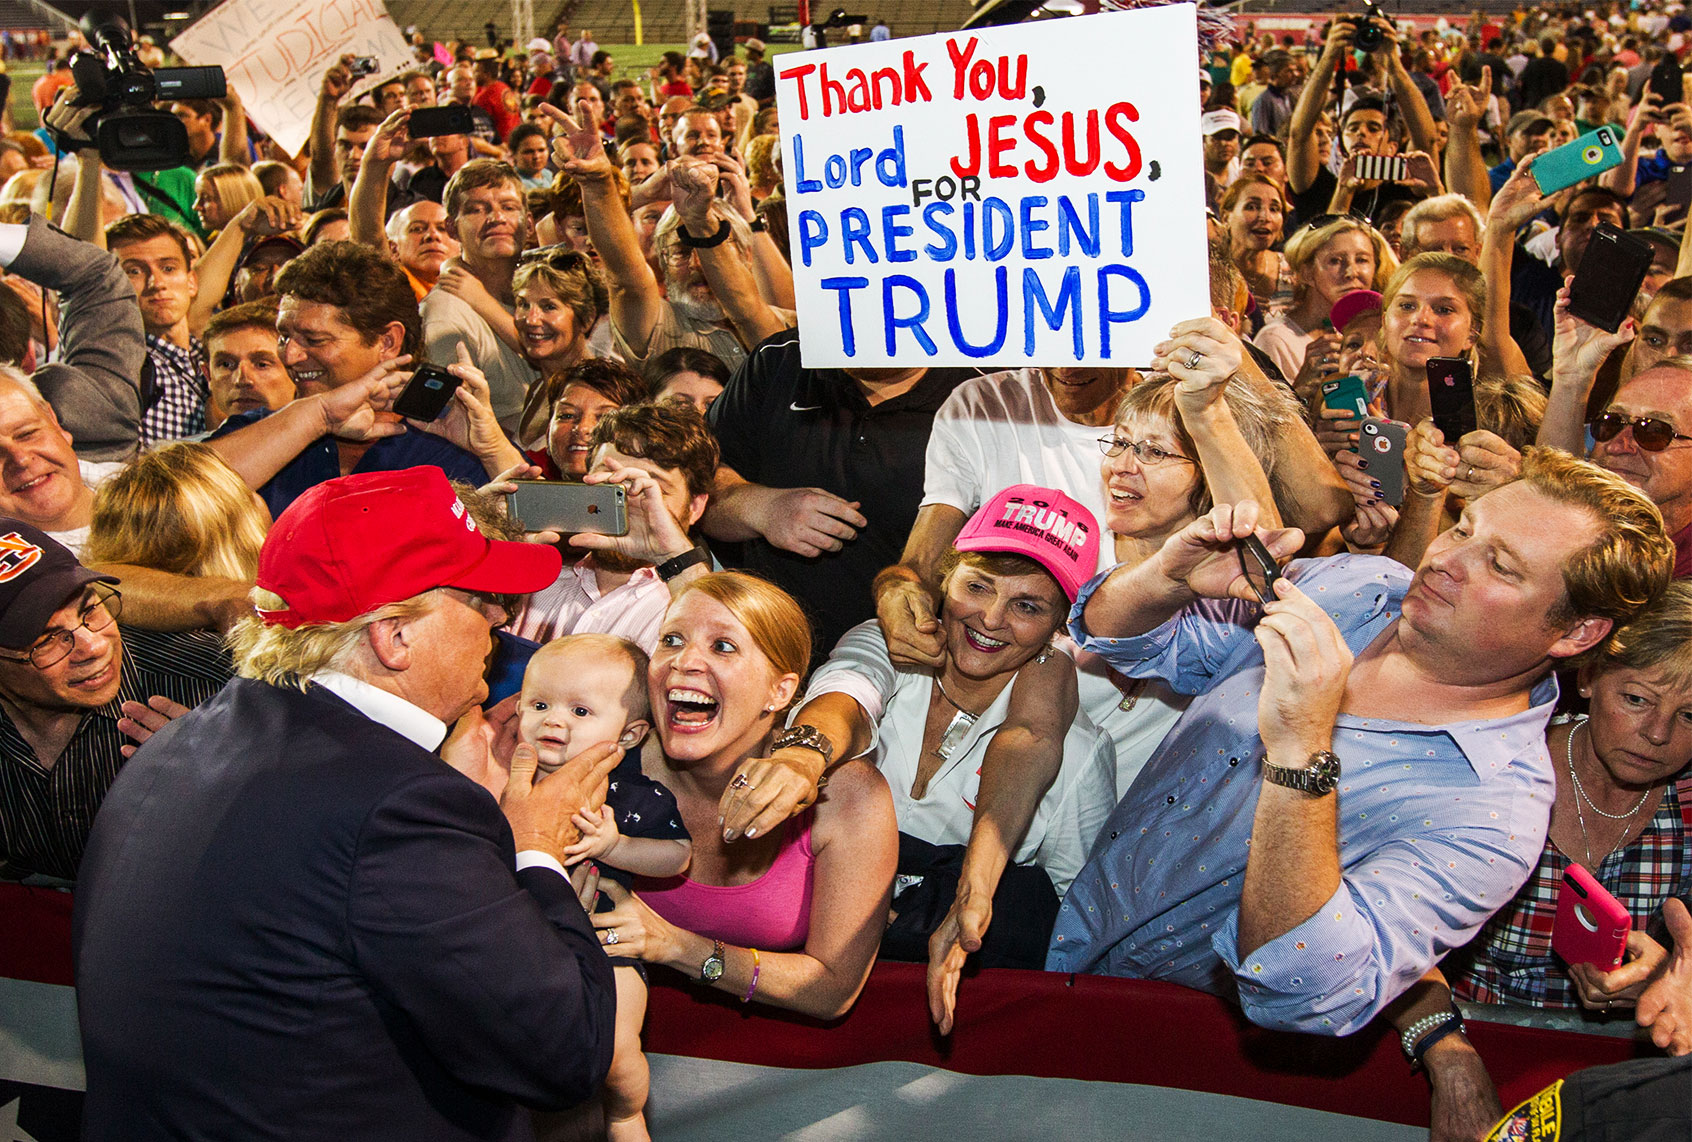 donald-trump-supporters-1112201.jpg